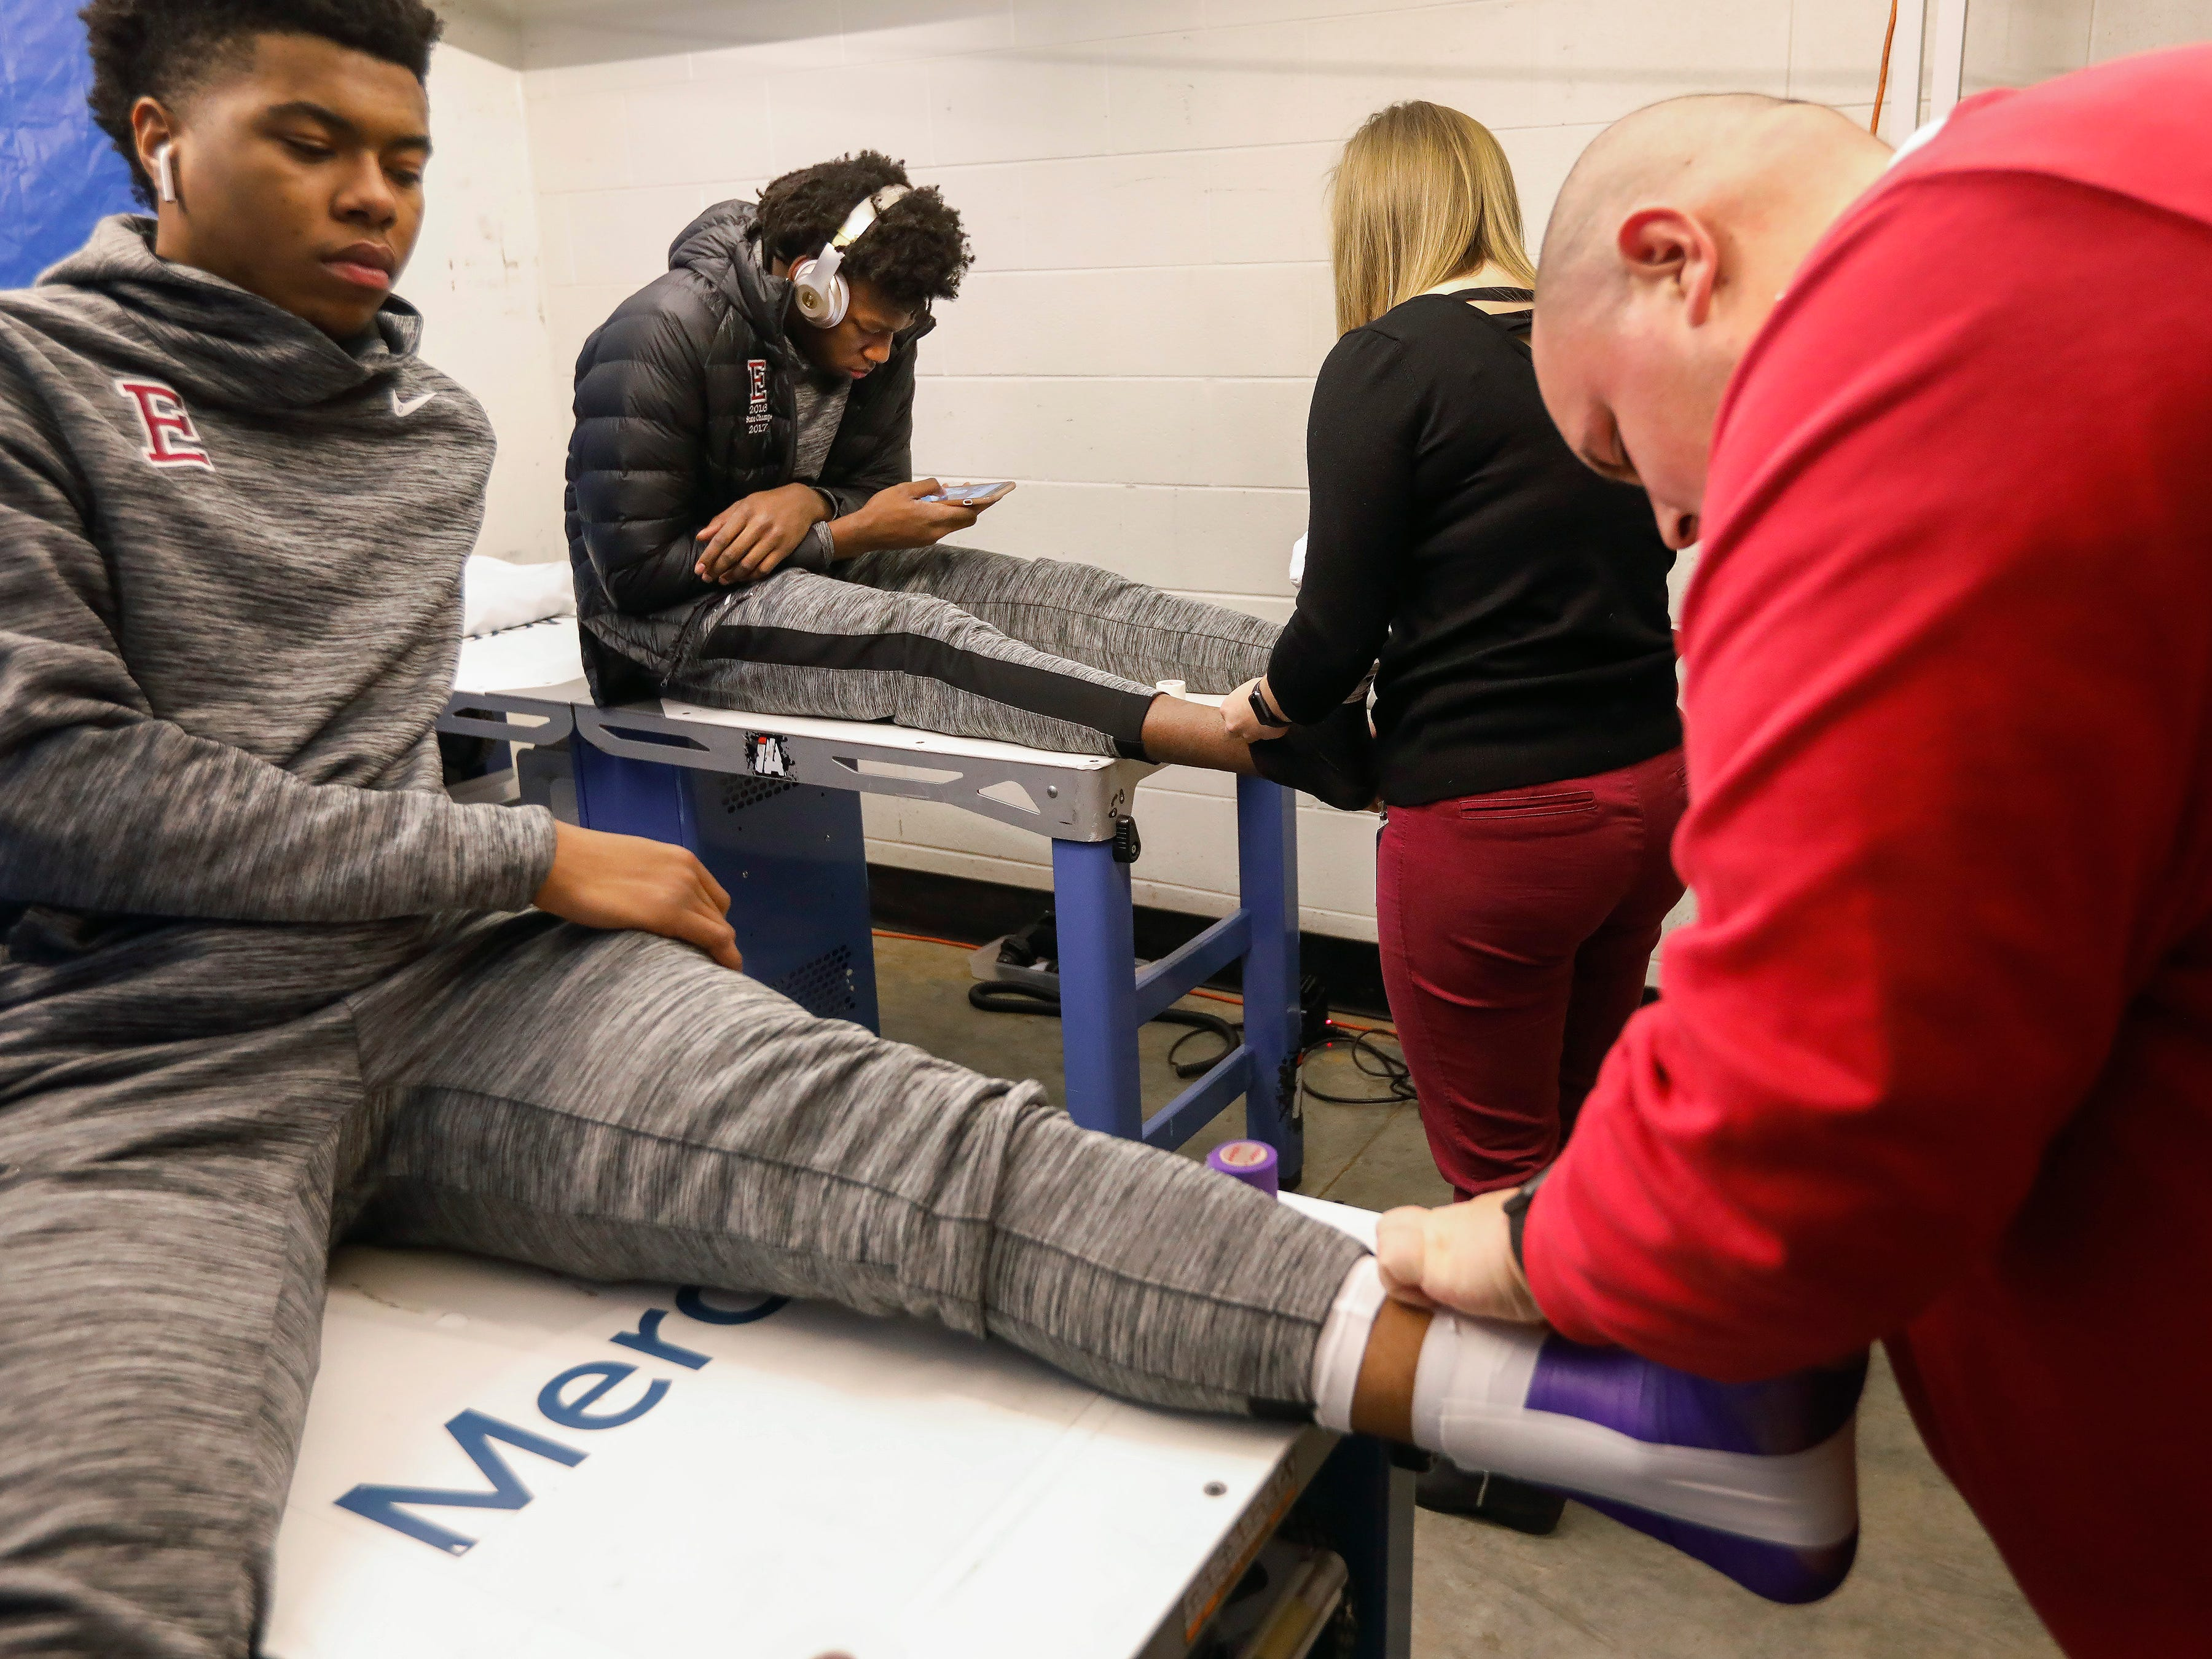 James Wiseman, center, of Memphis East High School, looks at his phone while getting taped up at JQH Arena for the Bass Pro Shops Tournament of Champions on Thursday, Jan. 17, 2019.